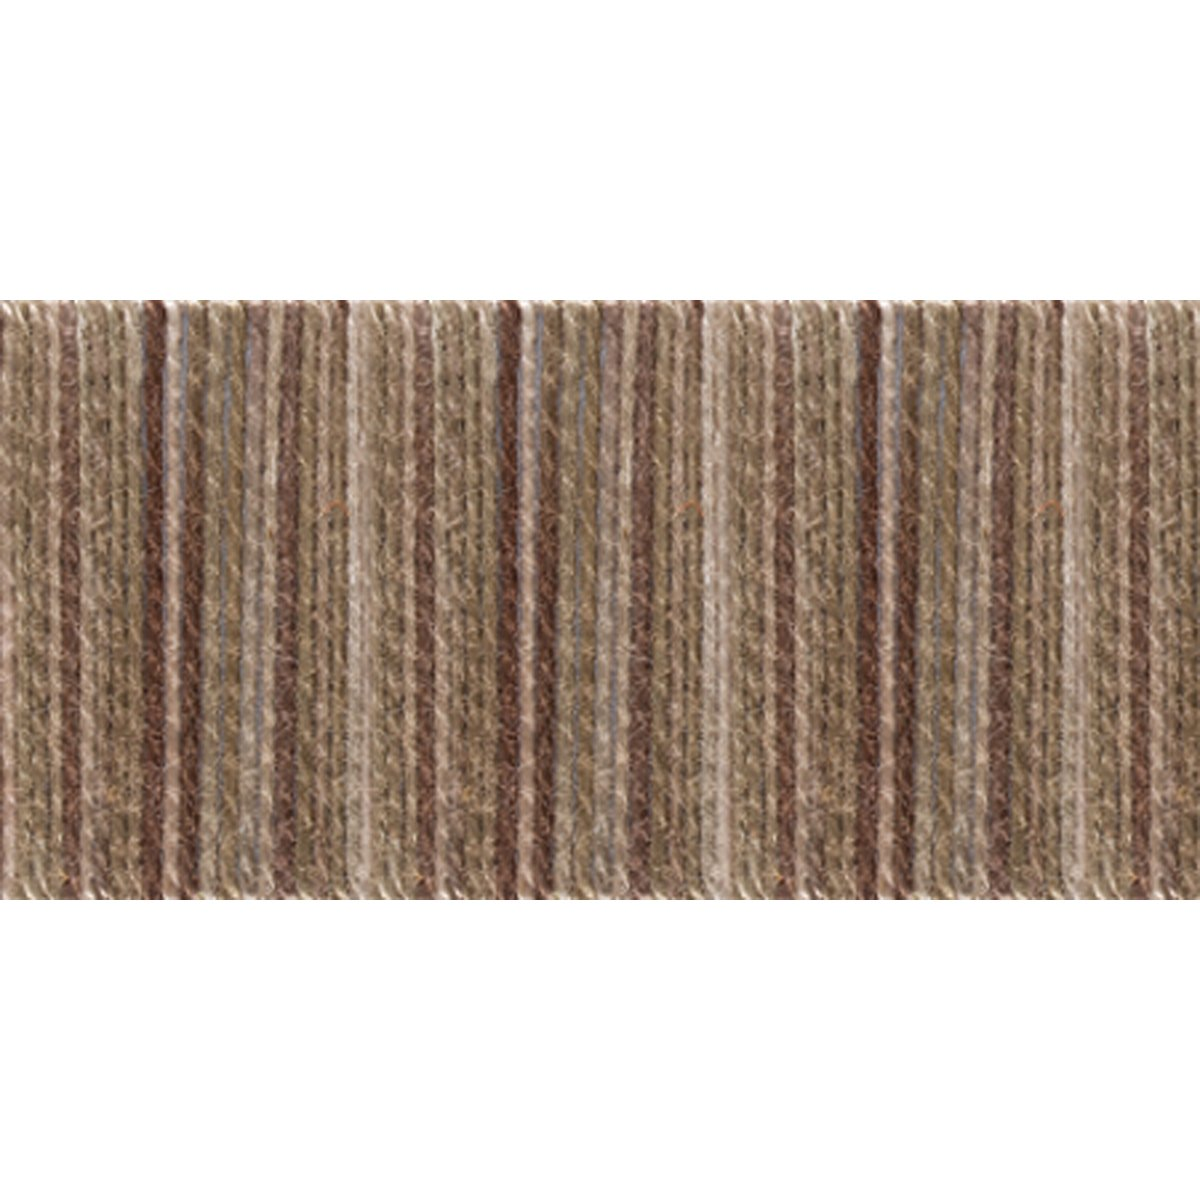 DMC 417F-4145 Color Variations Six Strand Embroidery Floss, 8.7-Yard, Sand Dune Notions - In Network